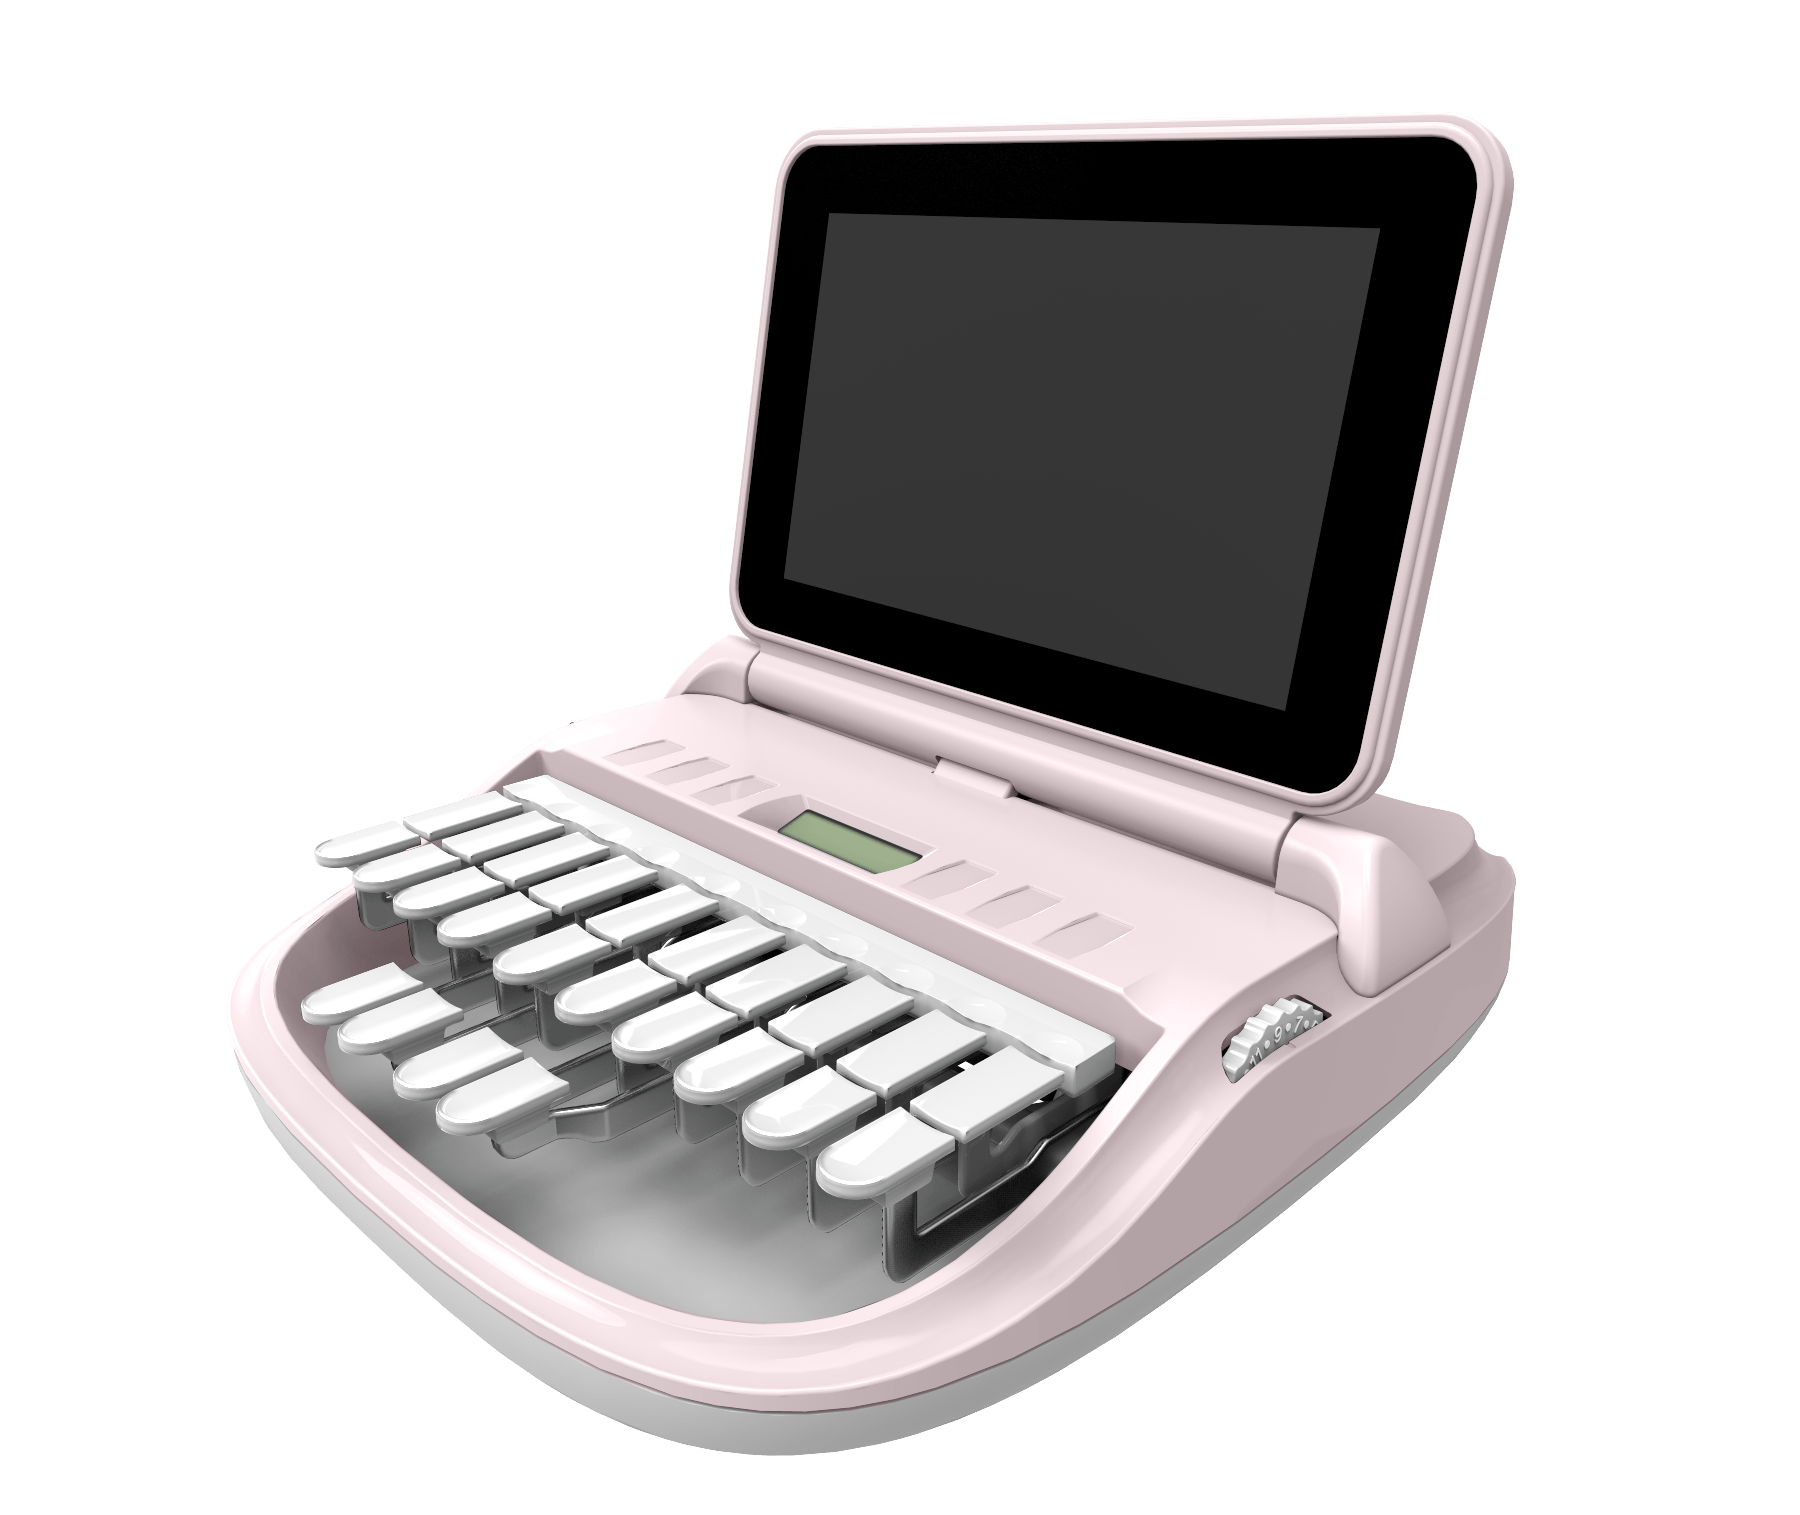 Stenograph Announces Release of Limited Edition Blush Luminex II